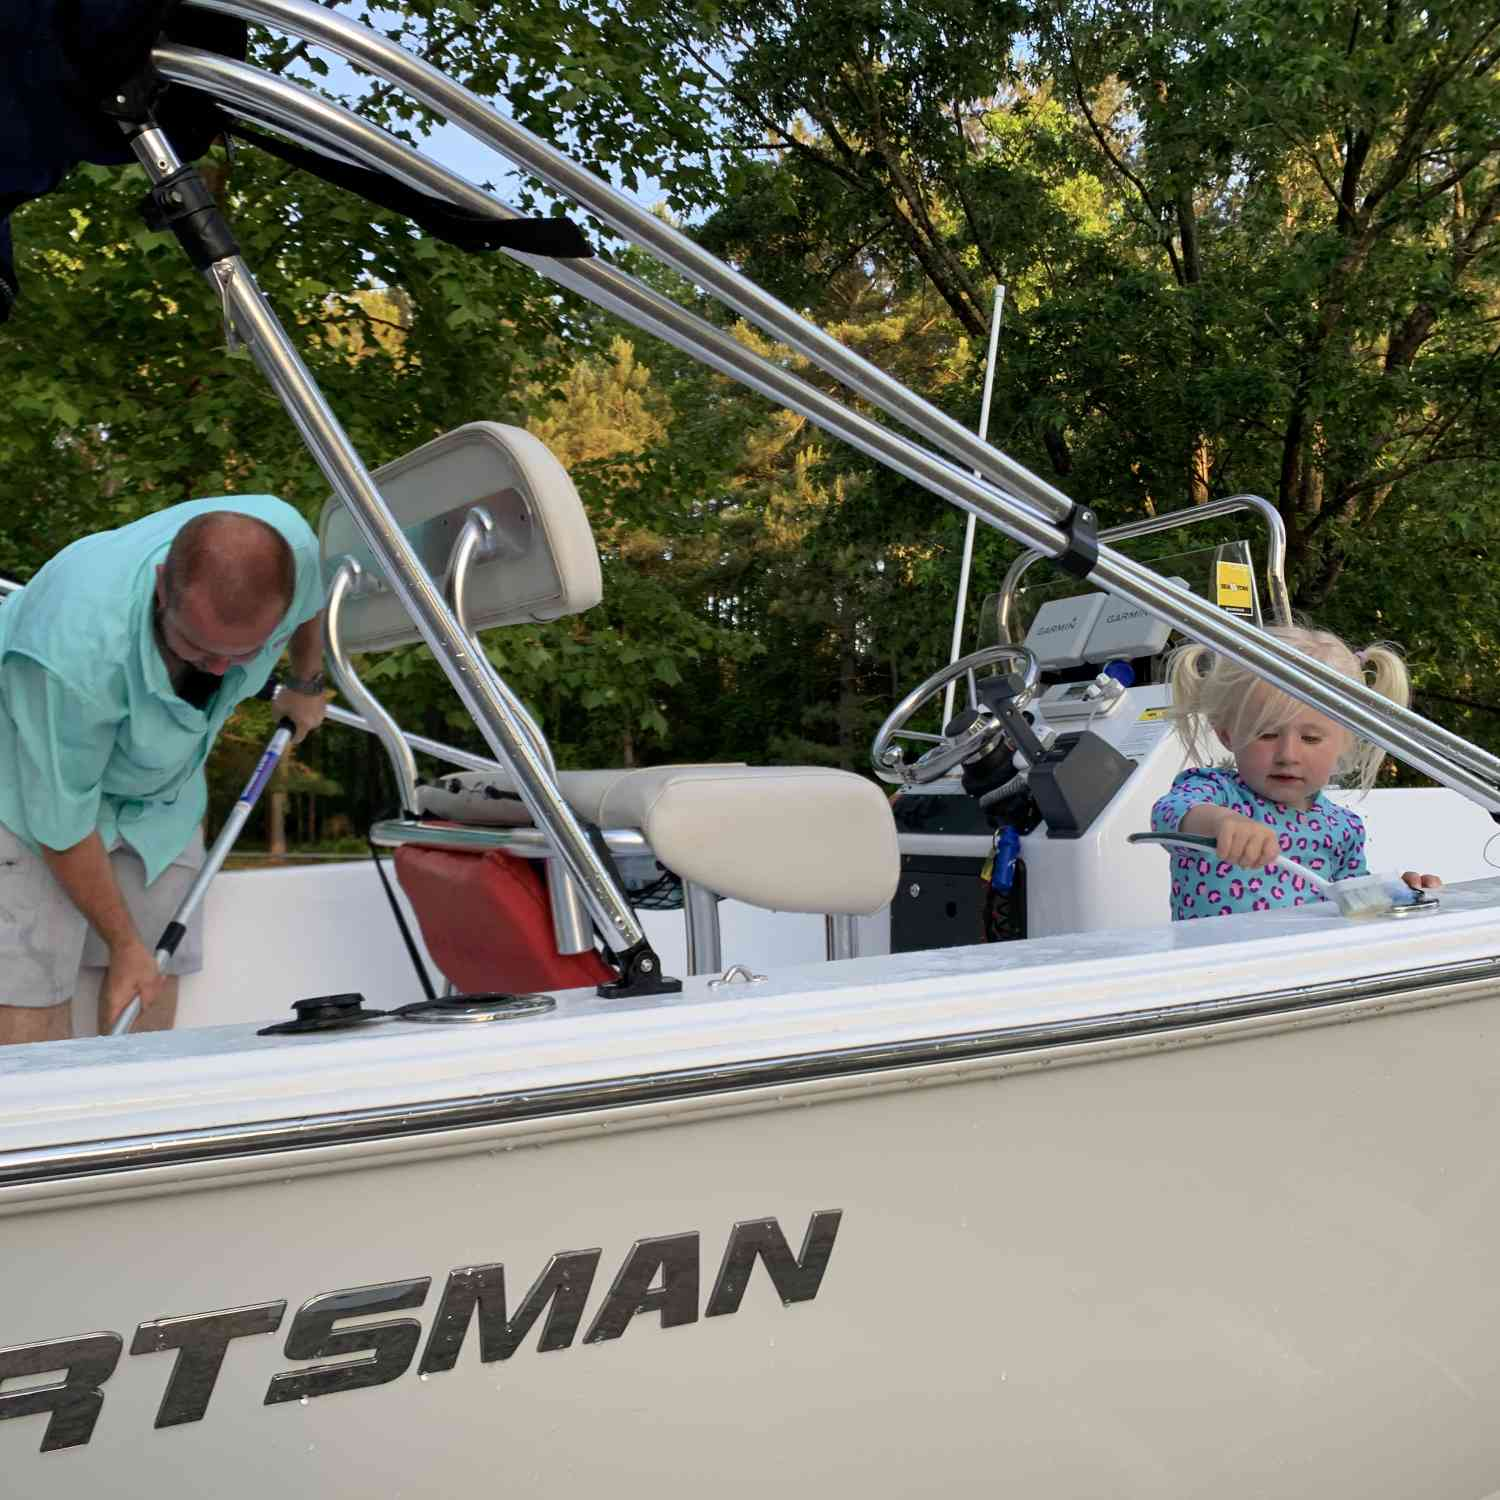 Title: IR 19 - On board their Sportsman Island Reef 19 Center Console - Location: Florence, SC. Participating in the Photo Contest #SportsmanMay2020